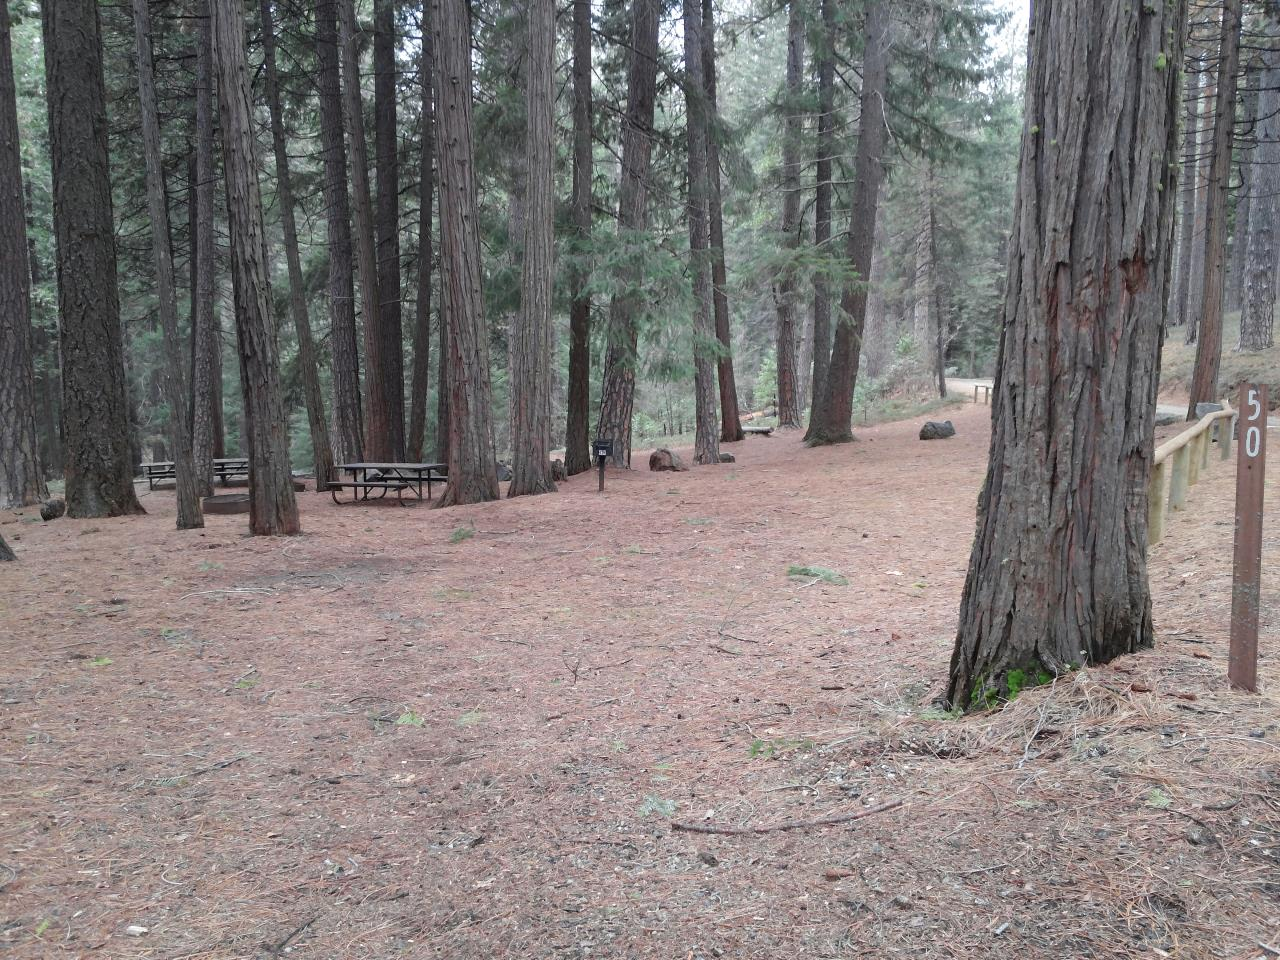 Sierra Spur site #50 - 2 vehicles, 24' MH - shade, level